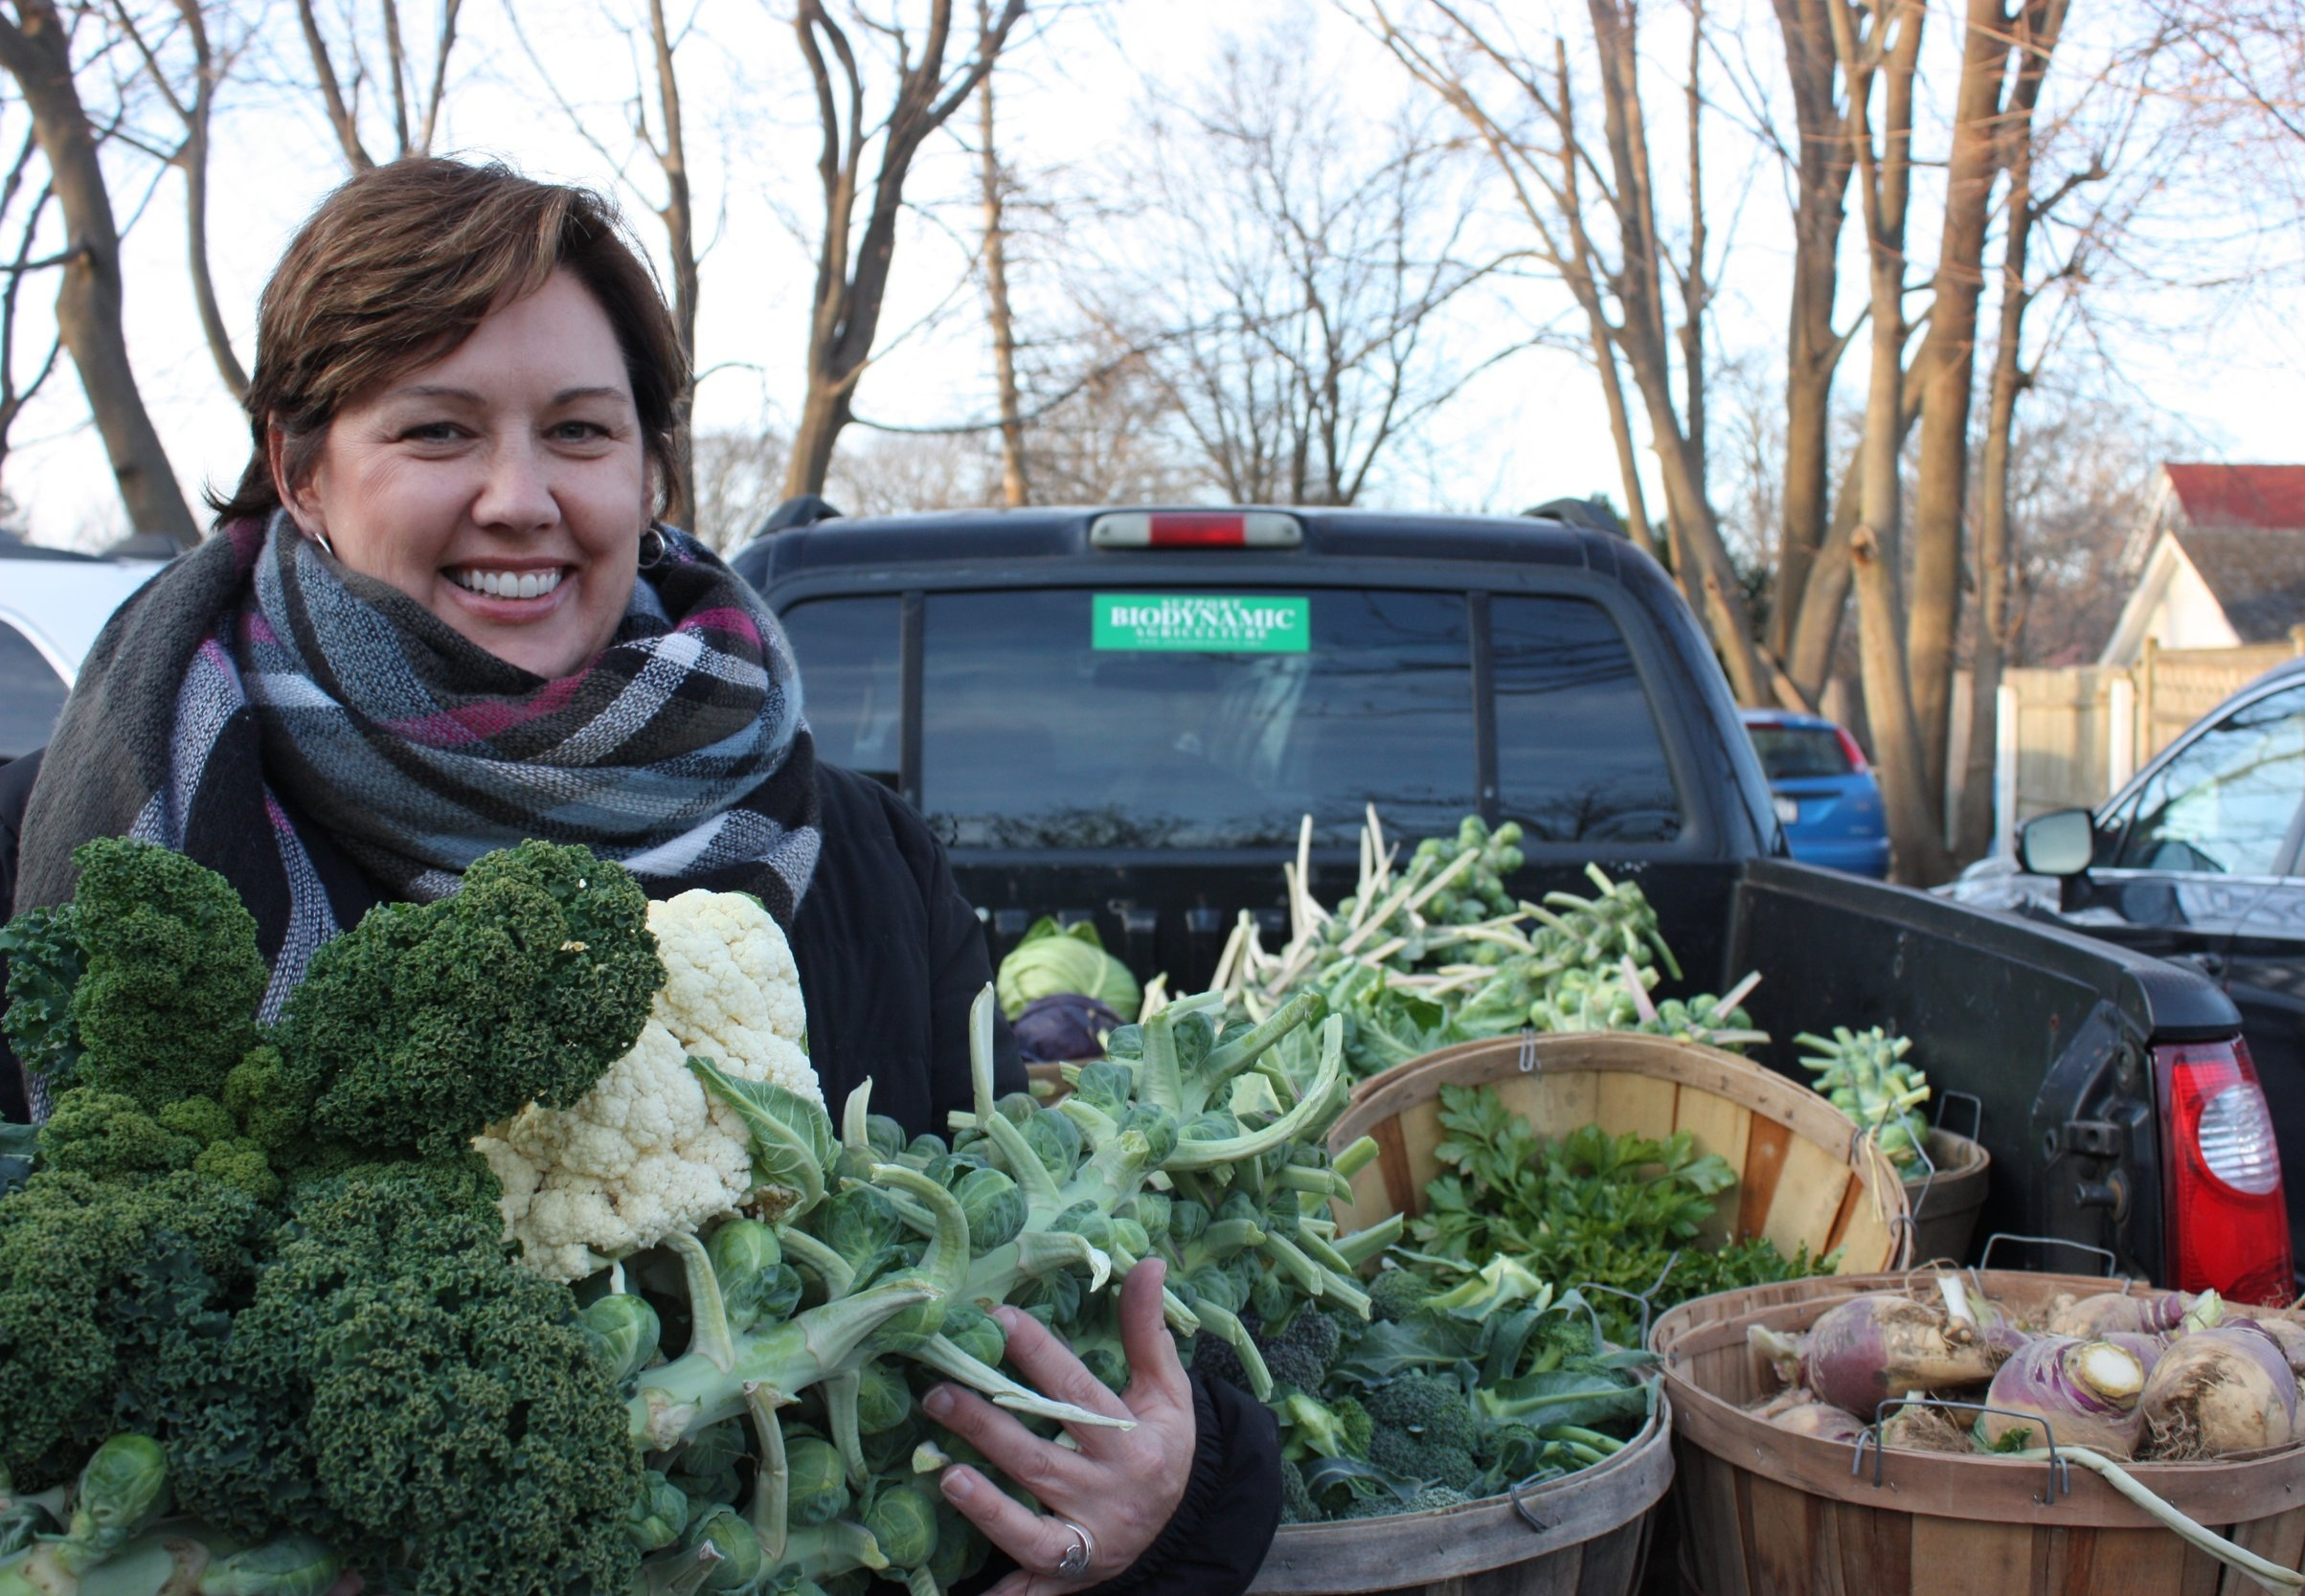 Cathy Demeroto, Executive Director of CAST, with an armful of donated vegetables.